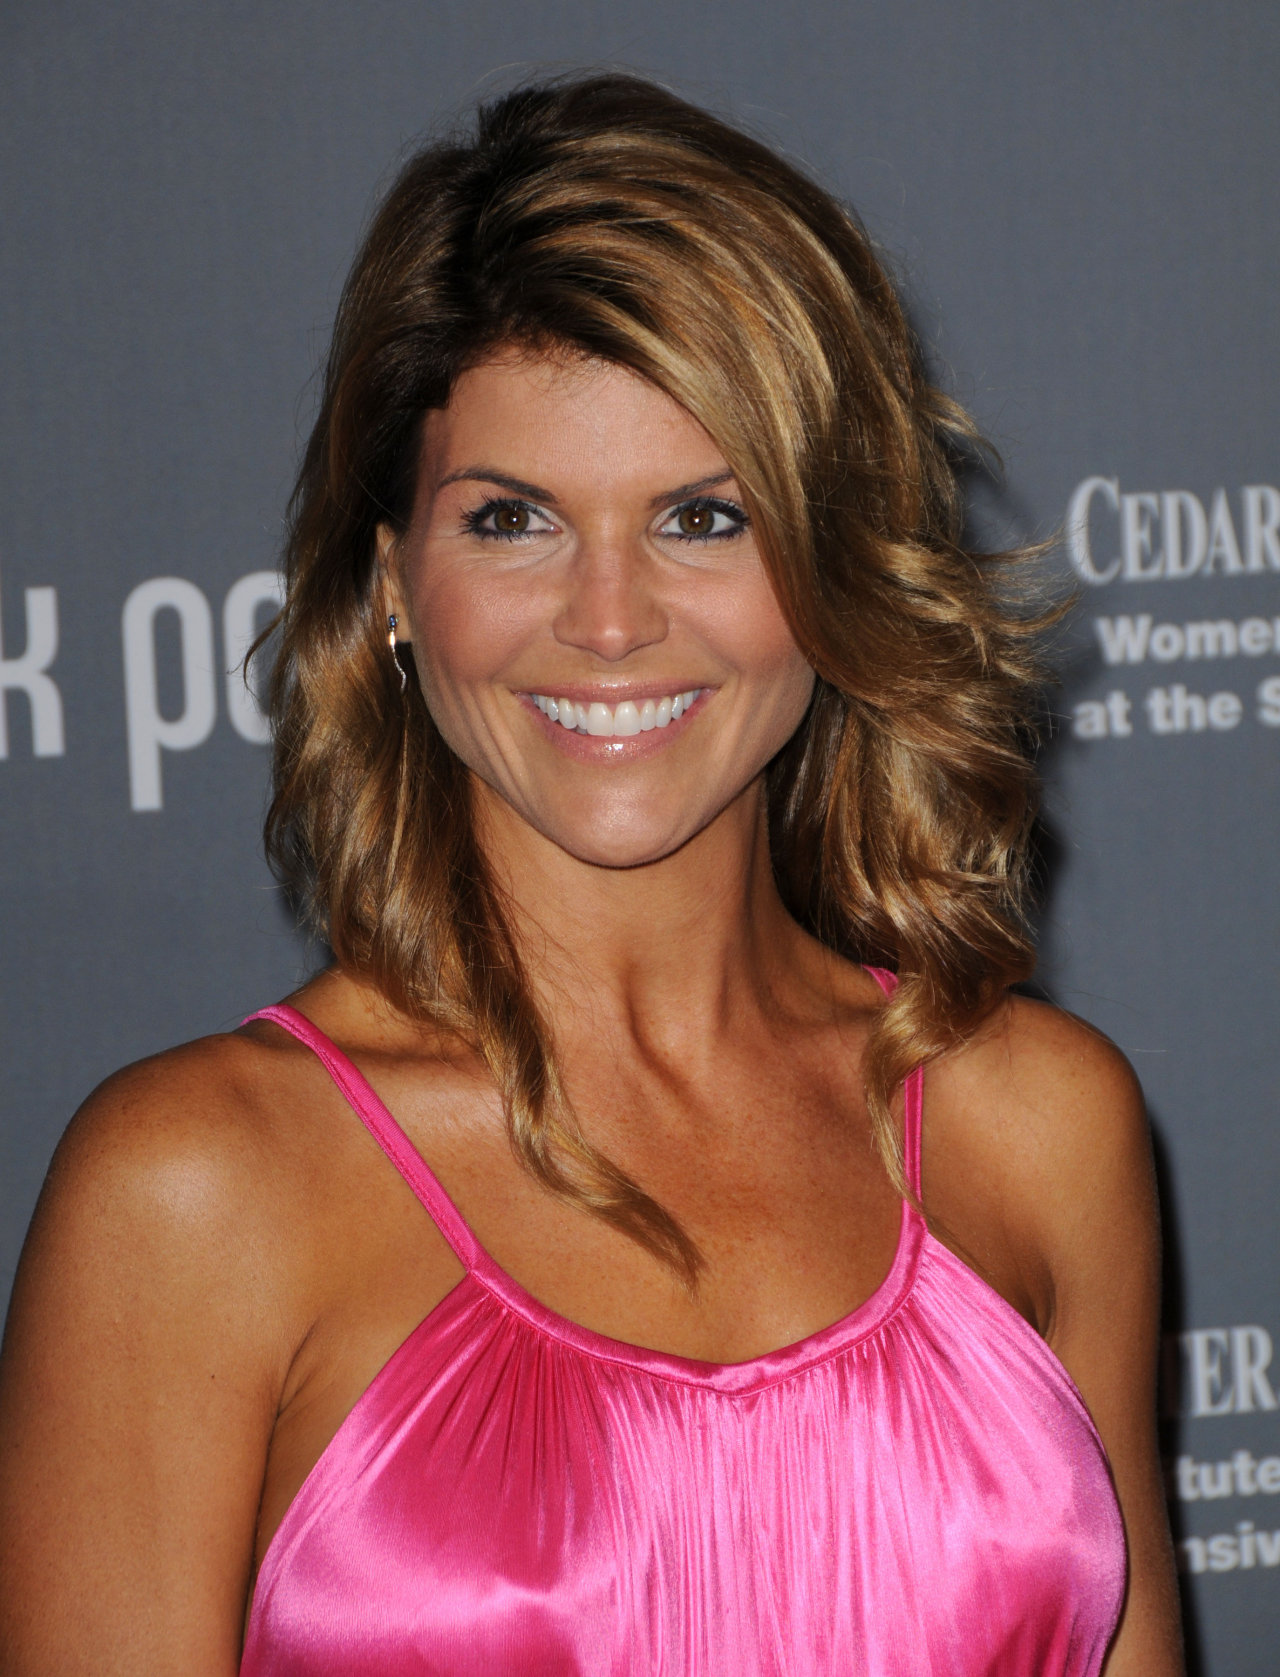 Lori Loughlin leaked wallpapers